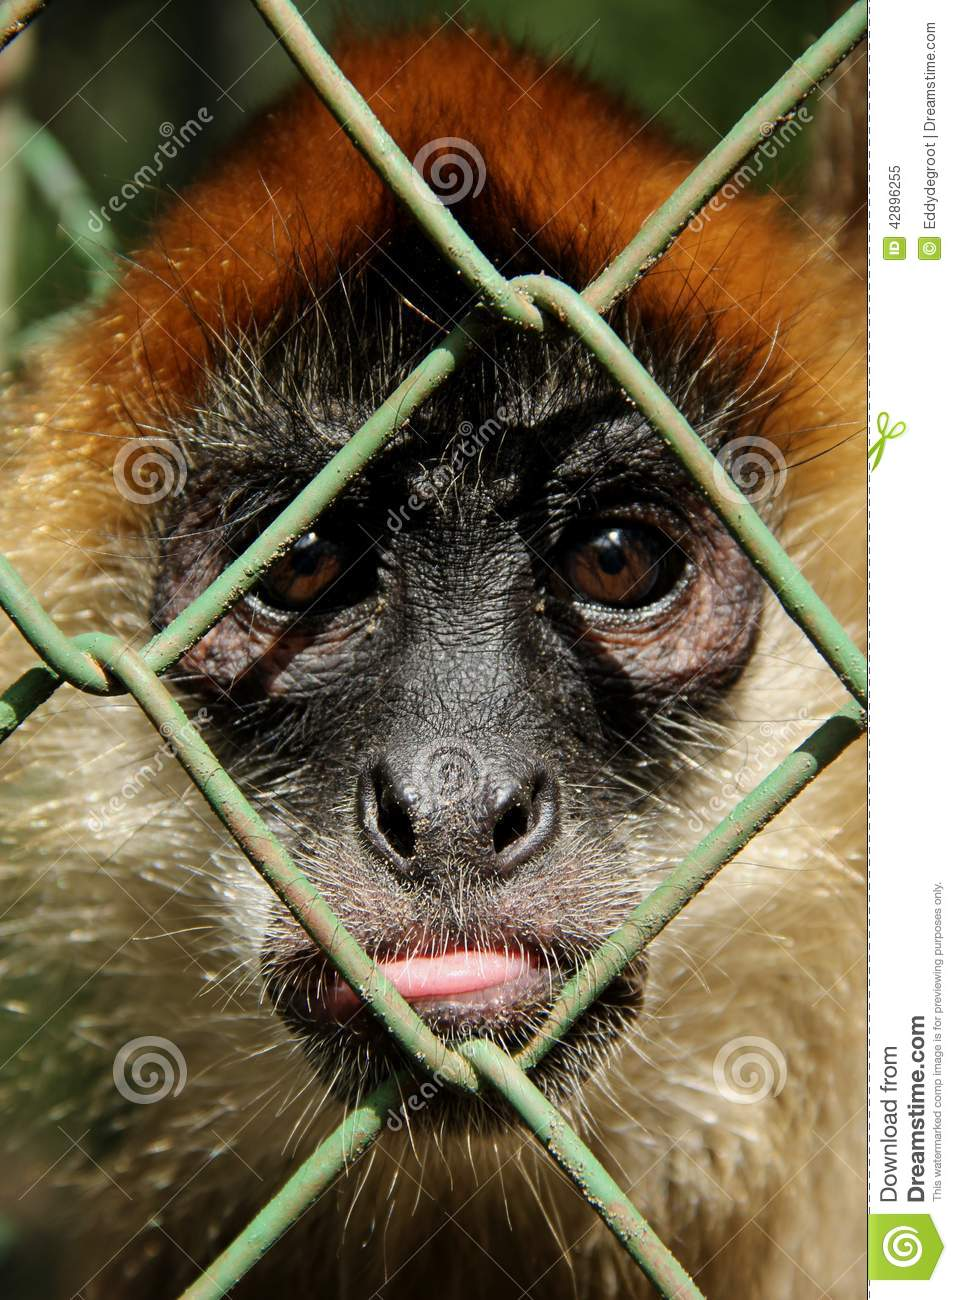 monkey in cage stock image image of tourist fauna color 42896255. Black Bedroom Furniture Sets. Home Design Ideas